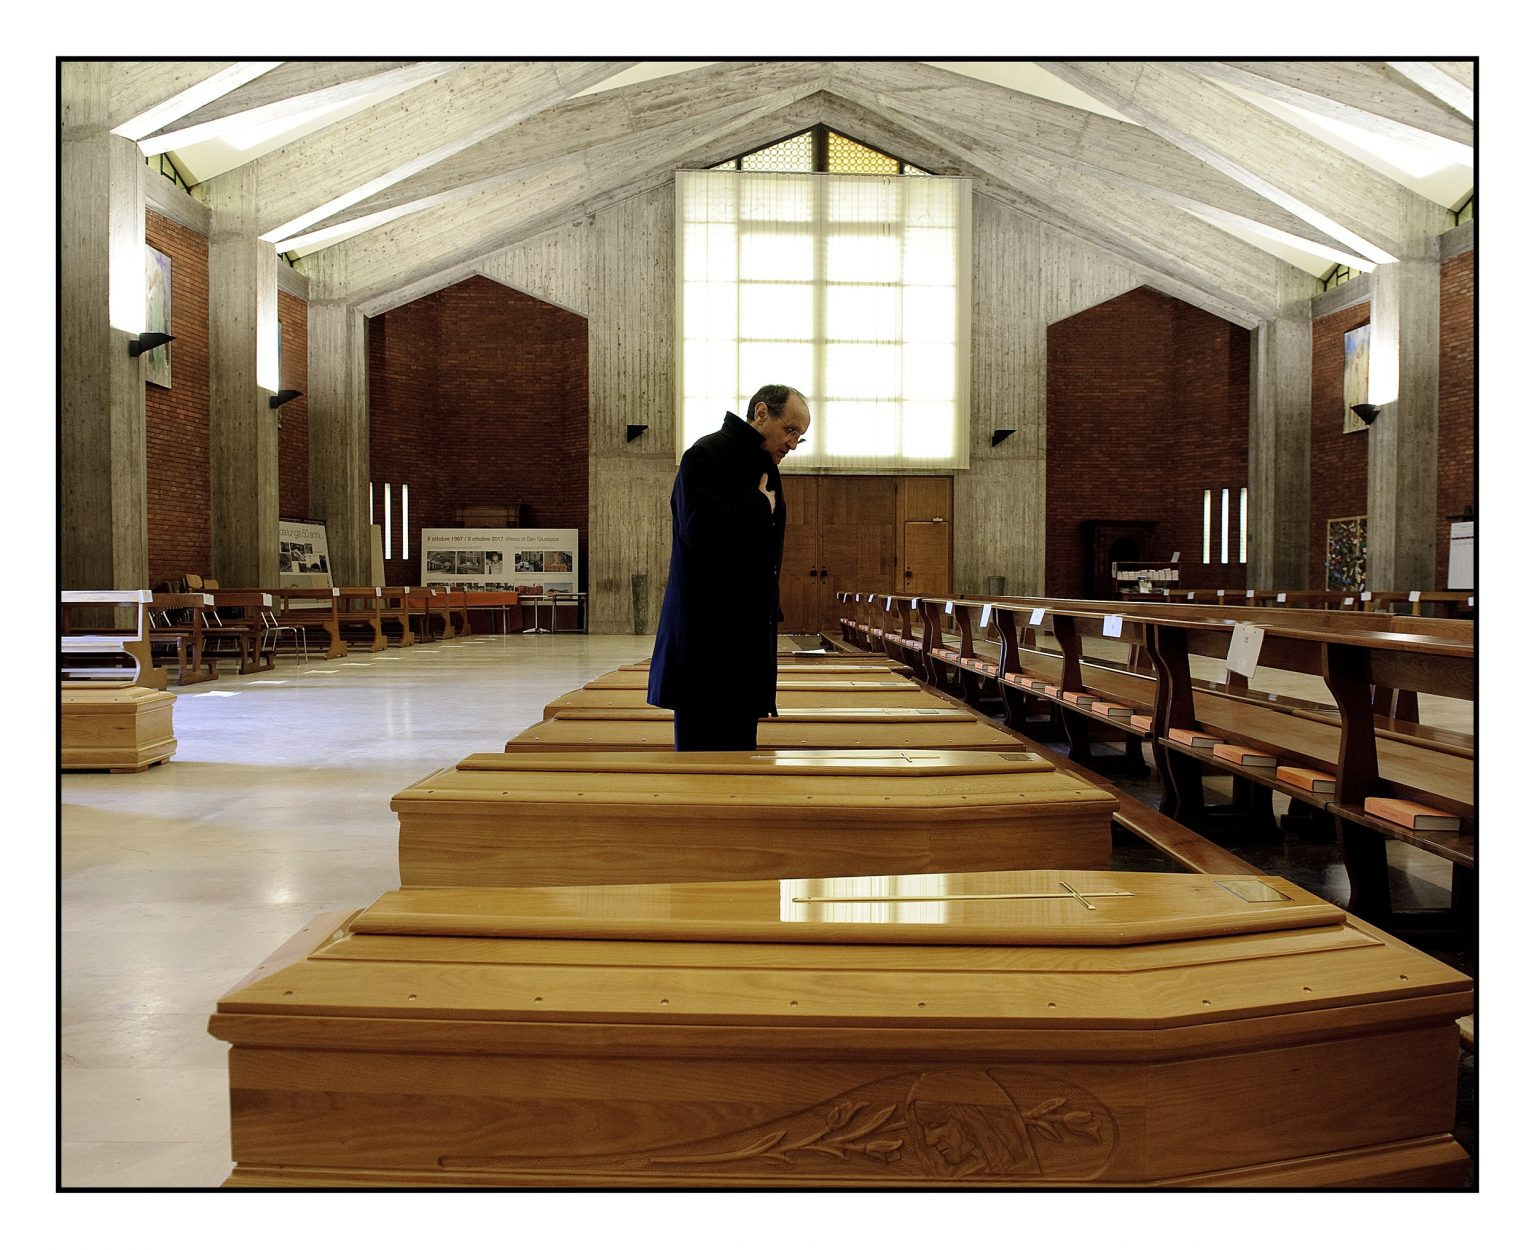 Coffin depots in Bergamo area. Don Mario, priest of San Giuseppe church, says a prayer for the new arrivals. His church in those days becomes an emergency depot where they are stored the coffins arriving from the eastern zones of the Bergamo province. The coffins are therefore sent by military truck transports out of the province, in the crematory ovens of northern Italy as available. Seriate, Bergamo, March 26th 2020